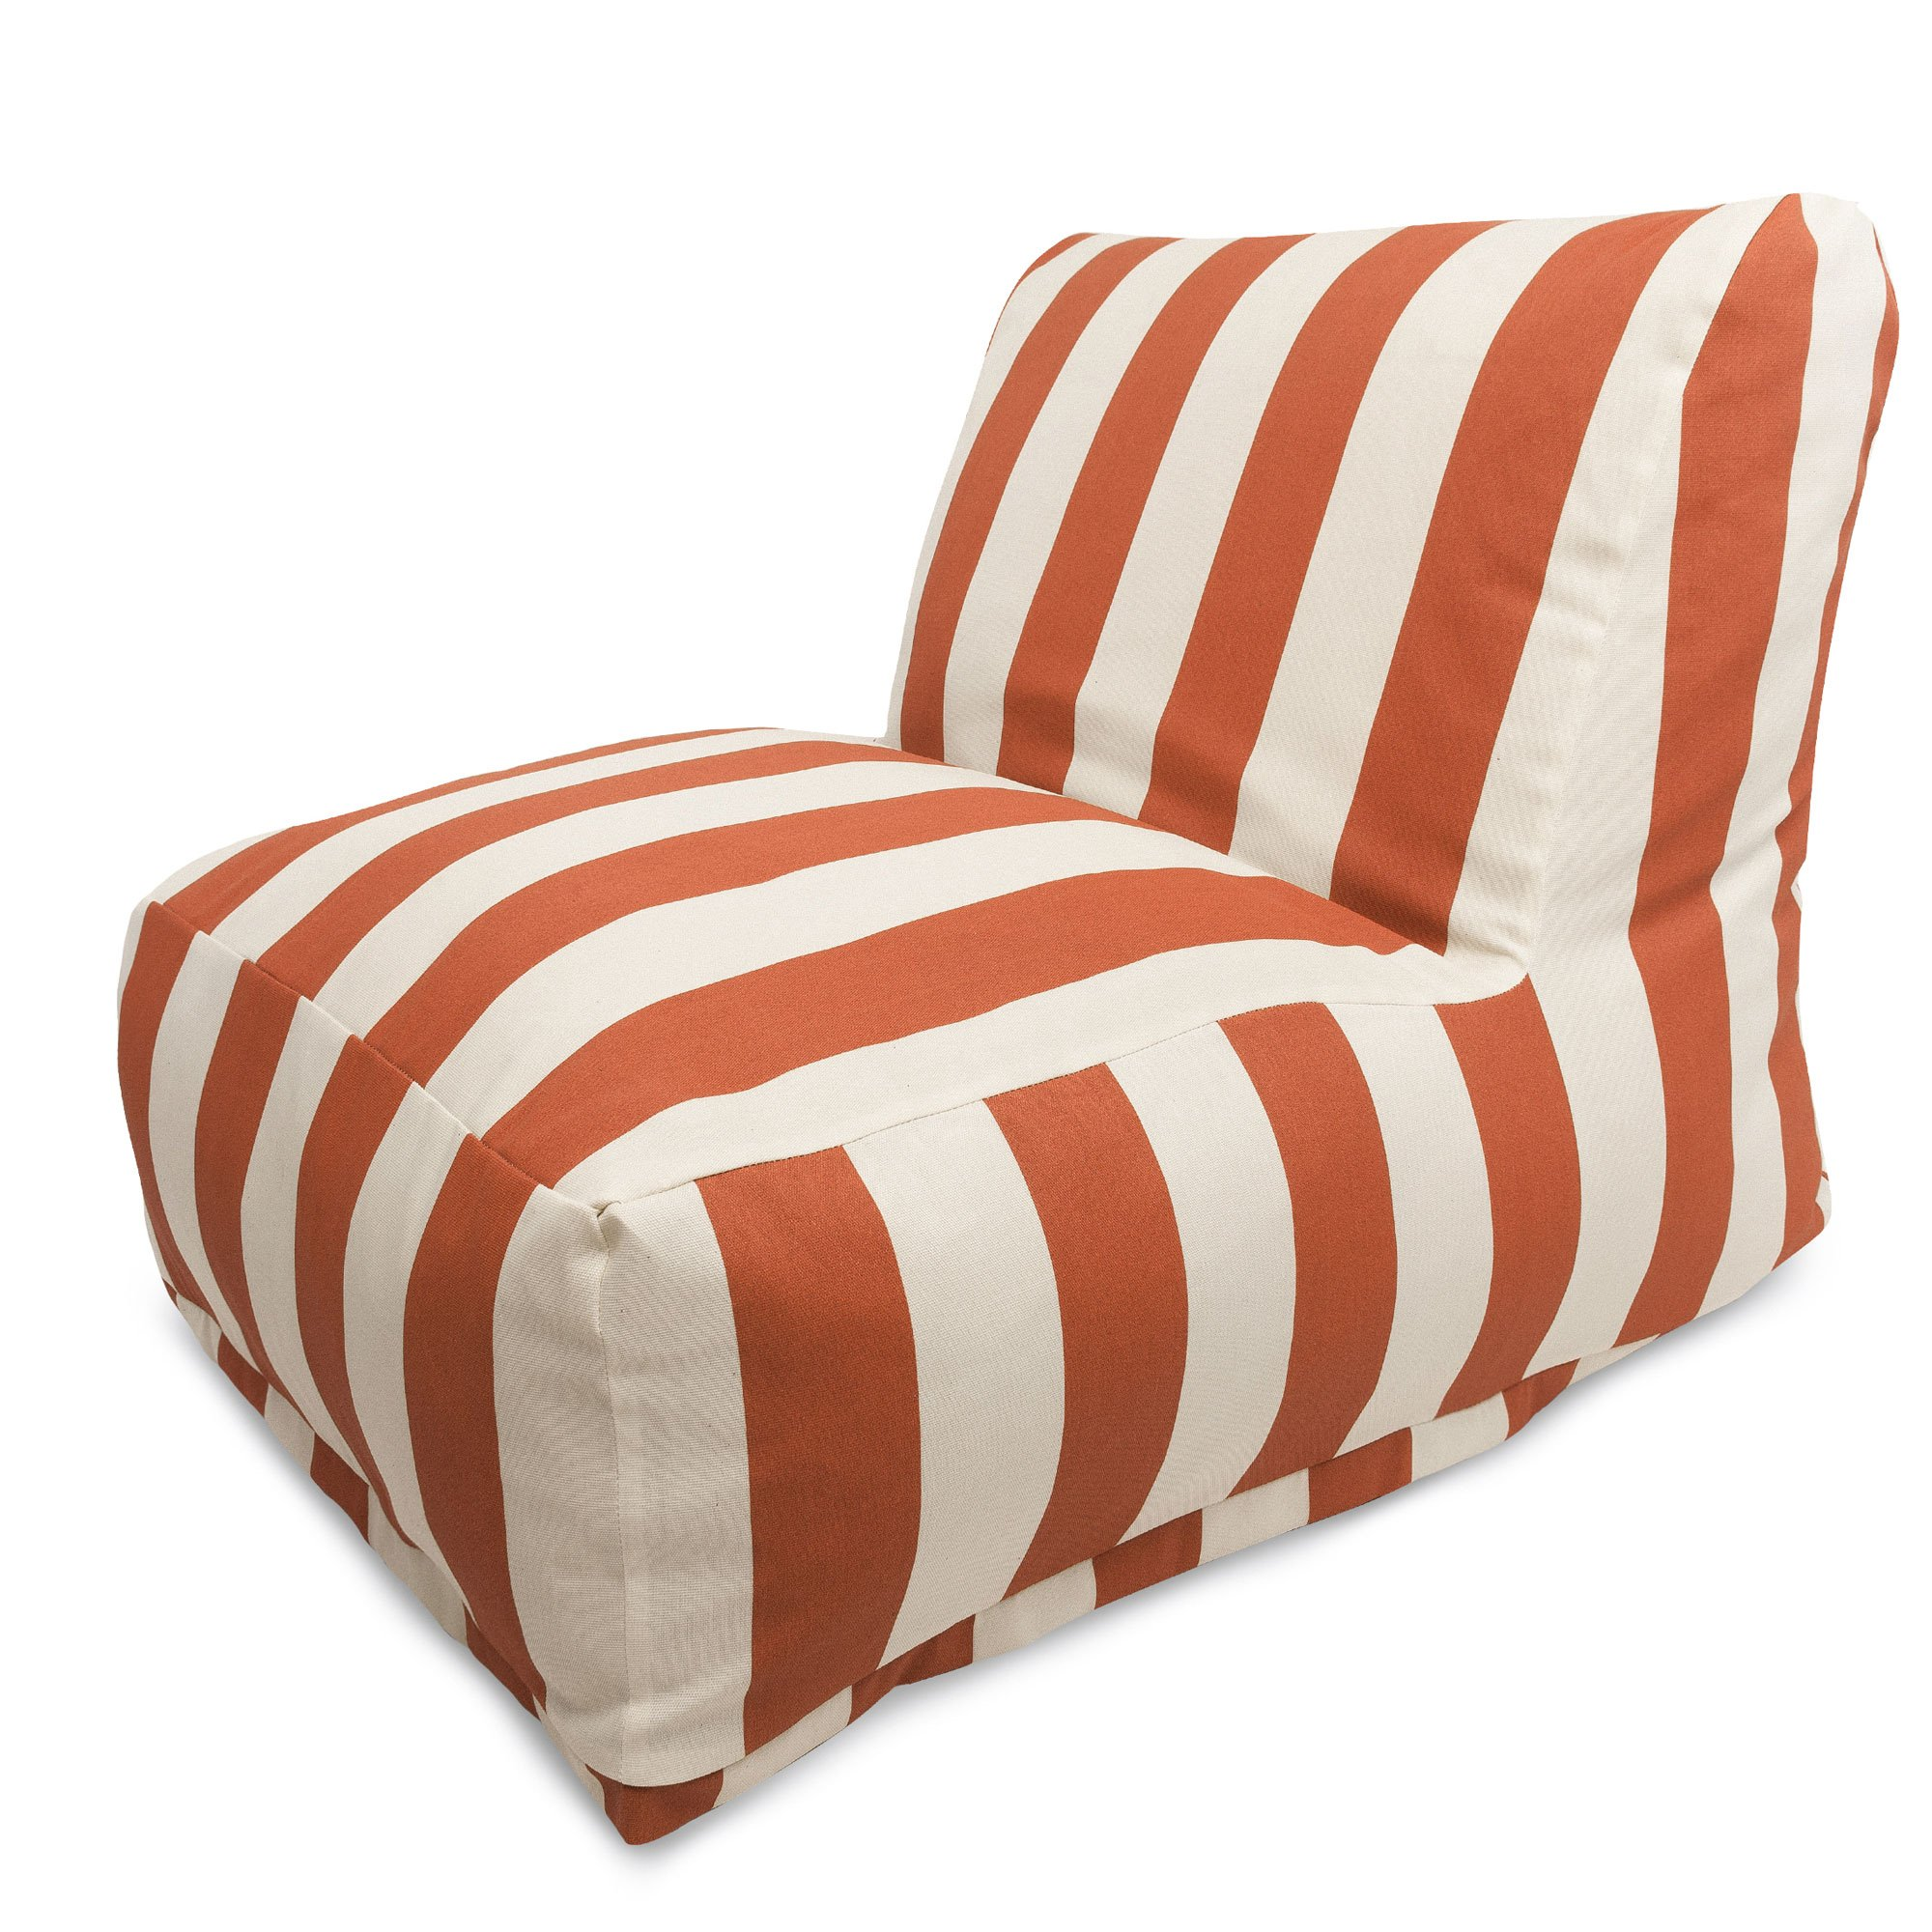 Beau Burnt Orange Vertical Stripe Outdoor Bean Bag Chair